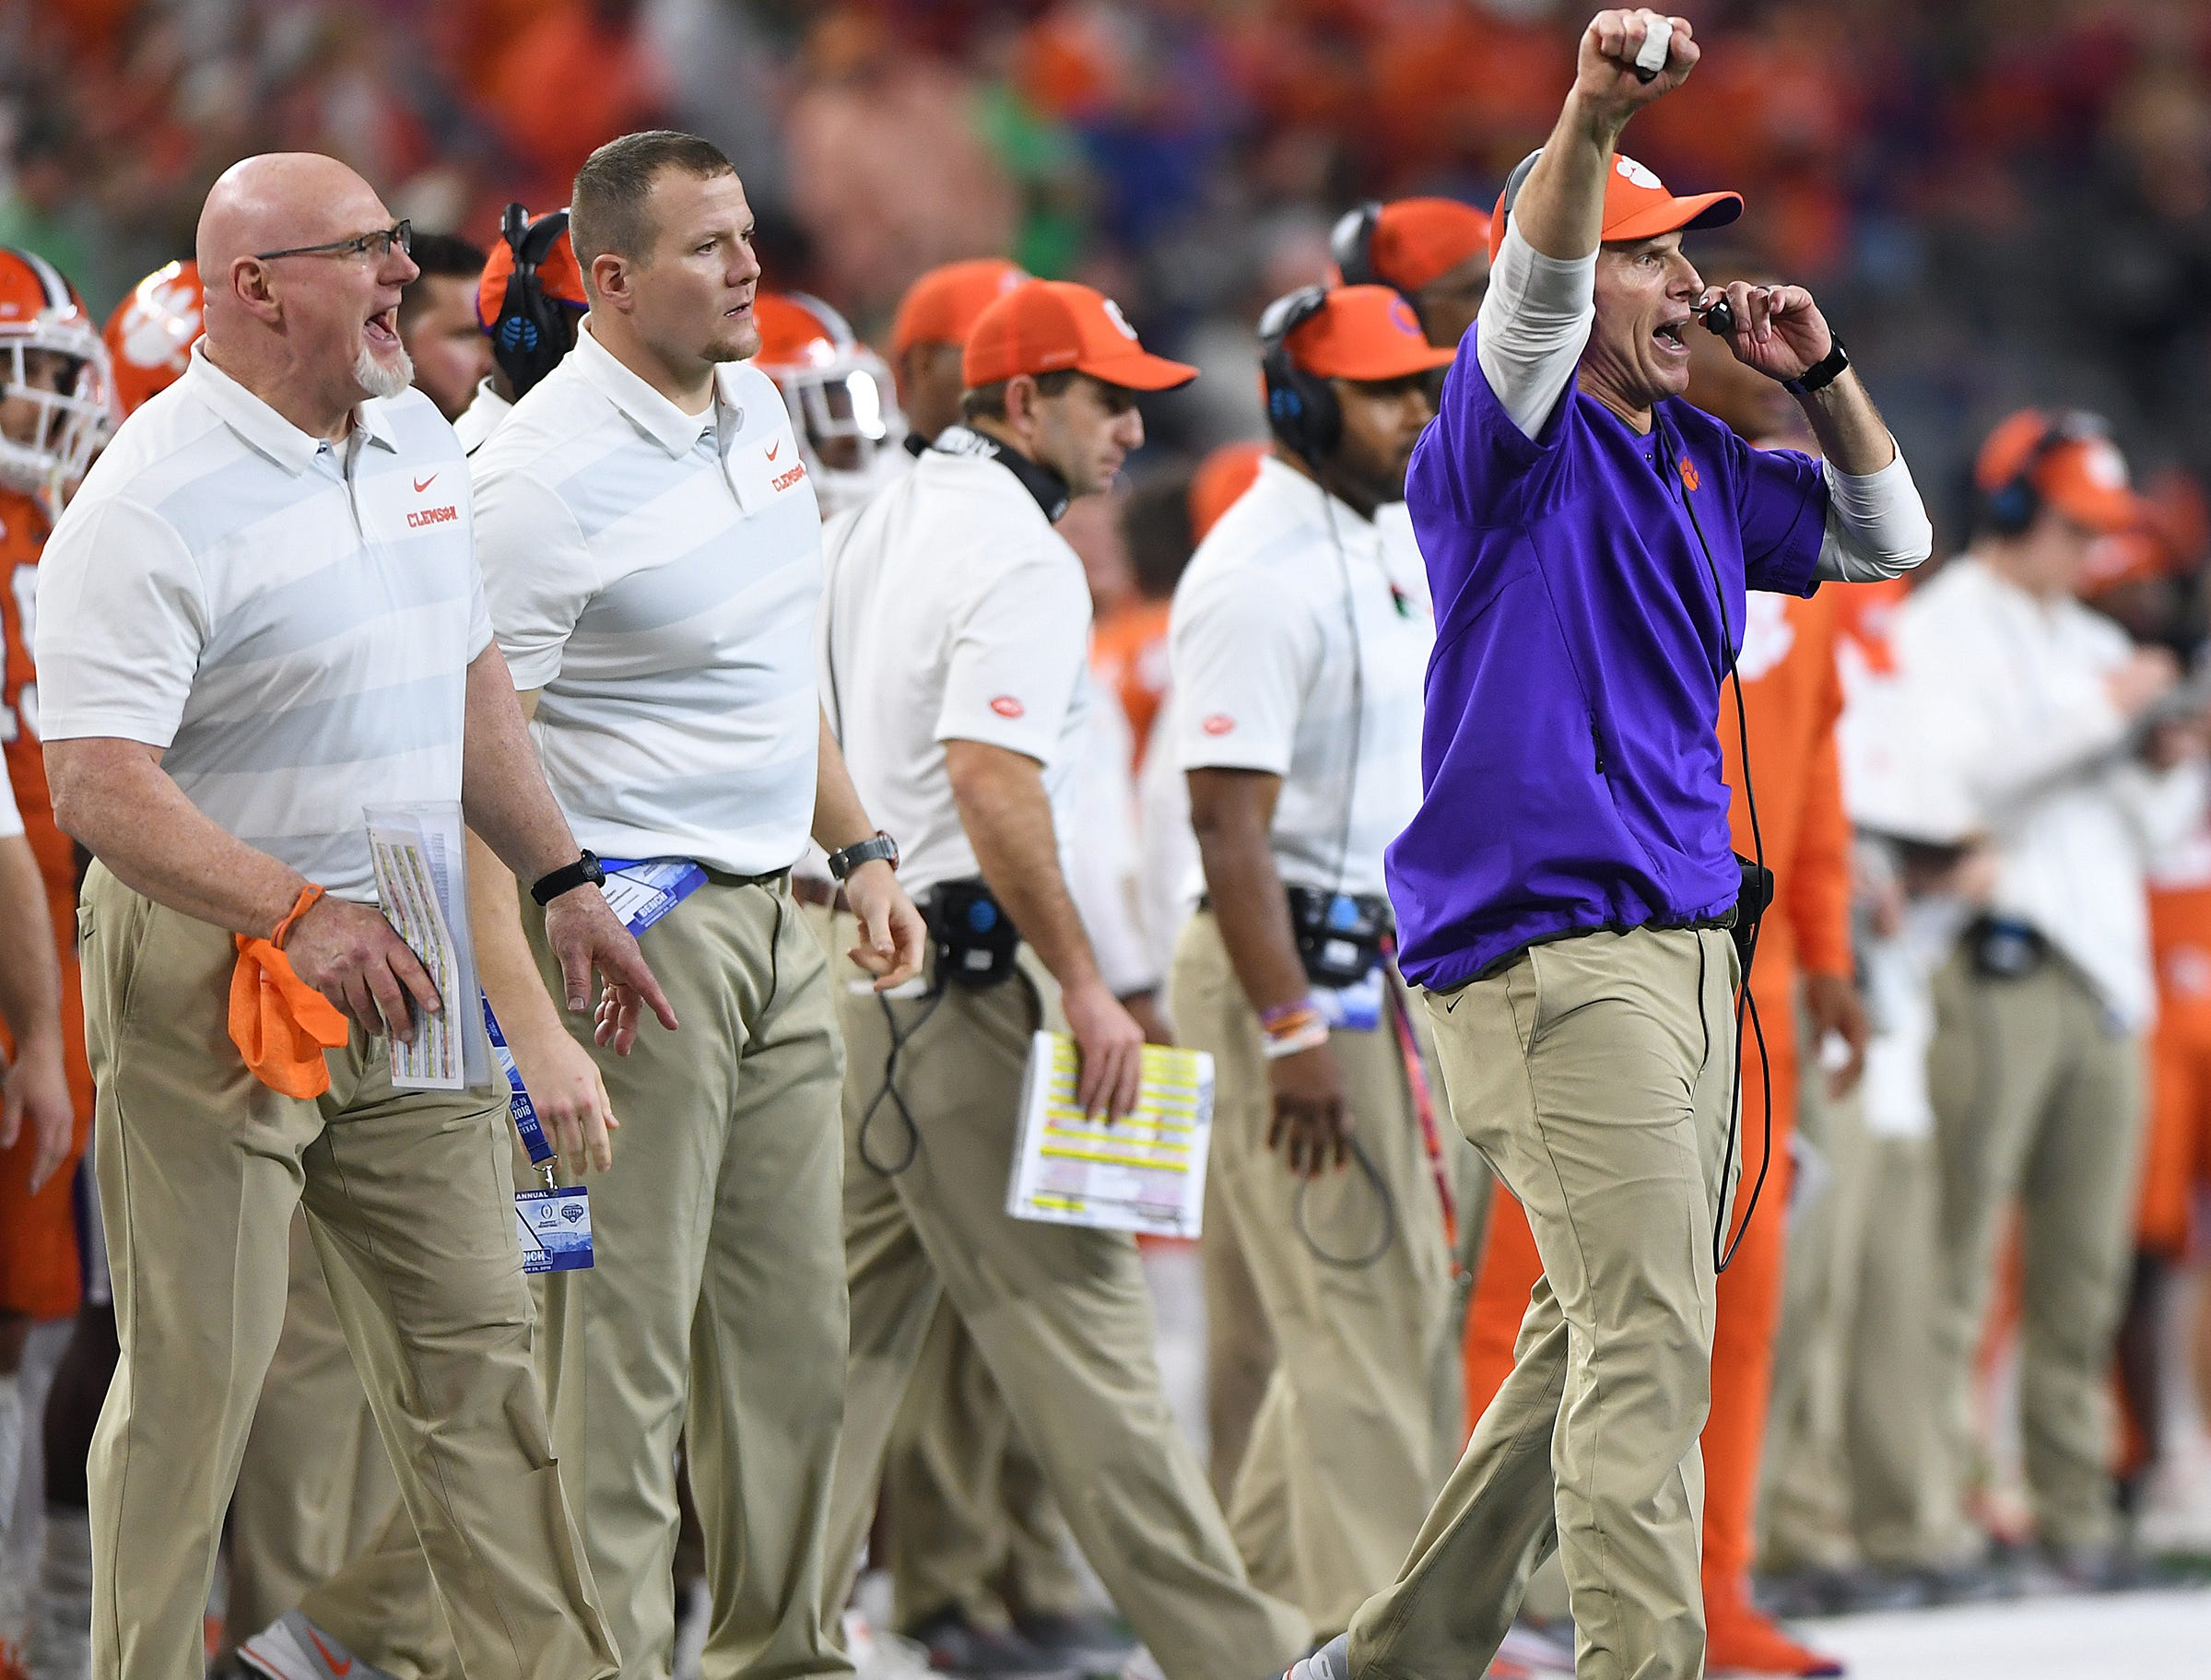 Clemson defensive coordinator Brent Venables during the 4th quarter of the Goodyear Cotton Bowl at AT&T stadium in Arlington, TX Saturday, December 29, 2018.